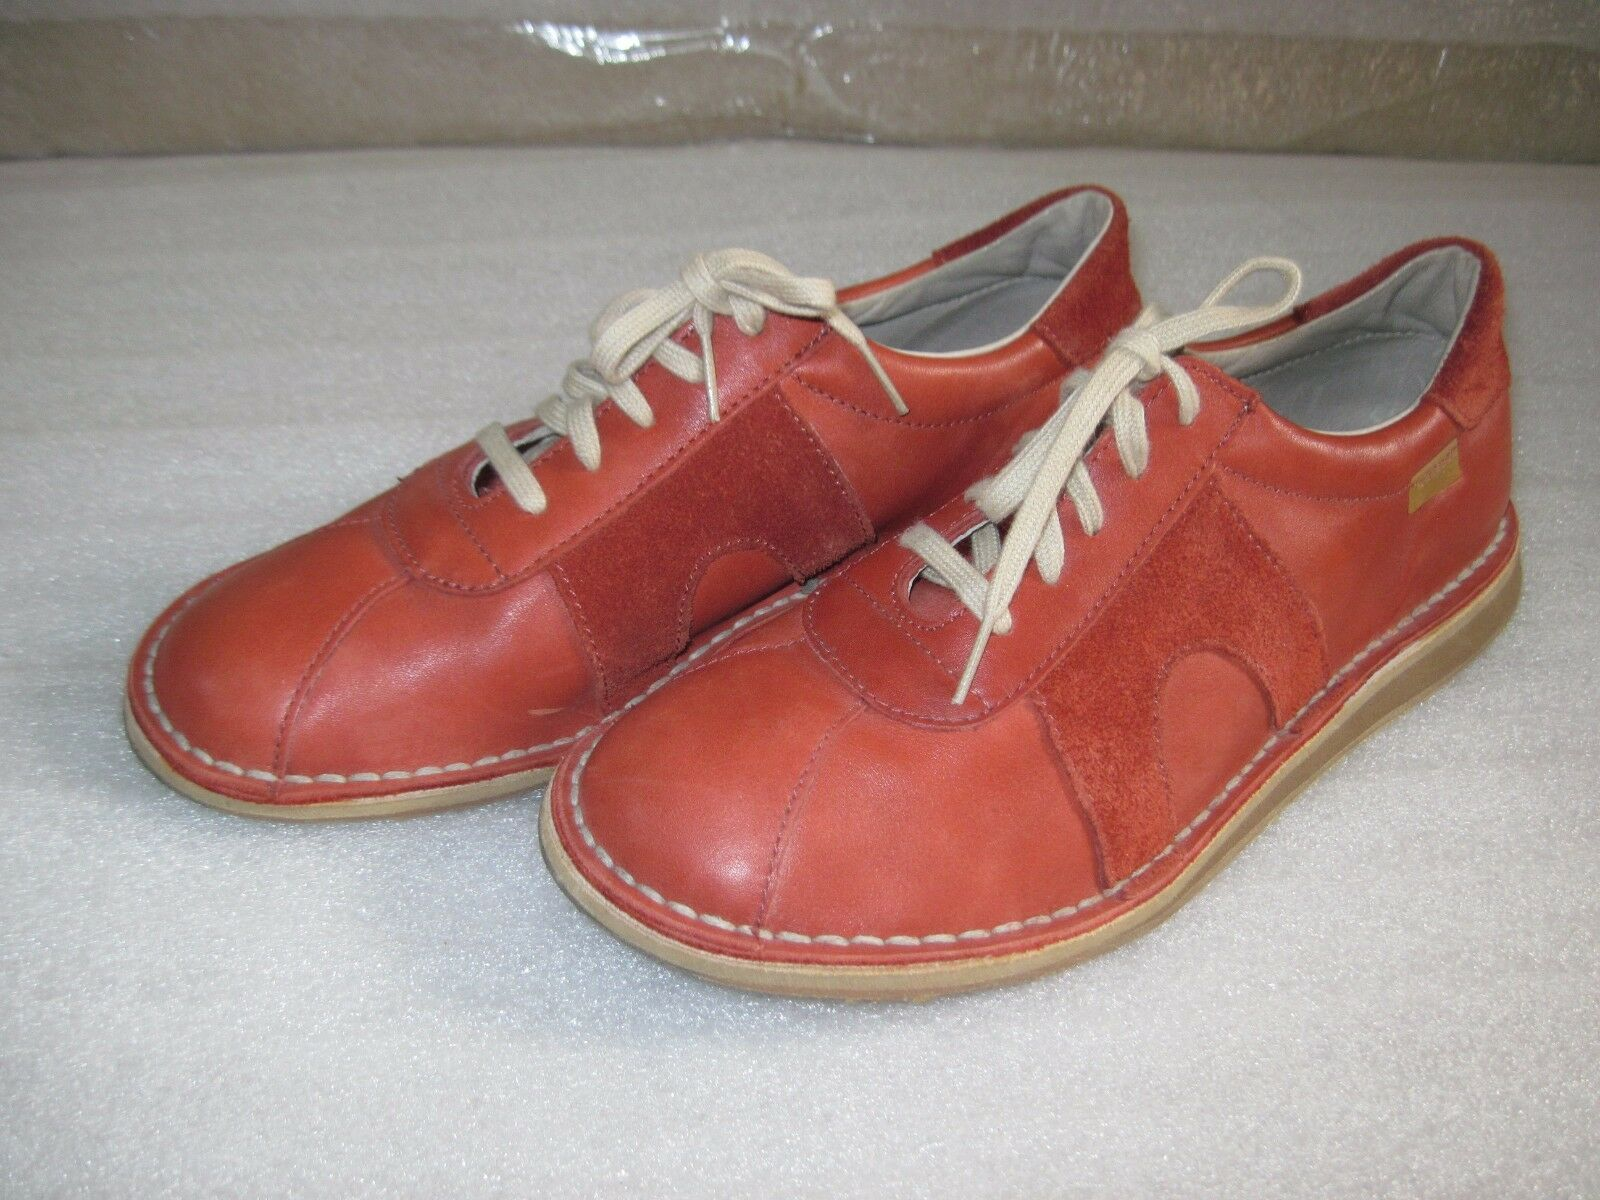 RARE Mens 7 1 2  Womens 9  Red Camper Leather Suede Sneakers Size 40 EUC Sneaker